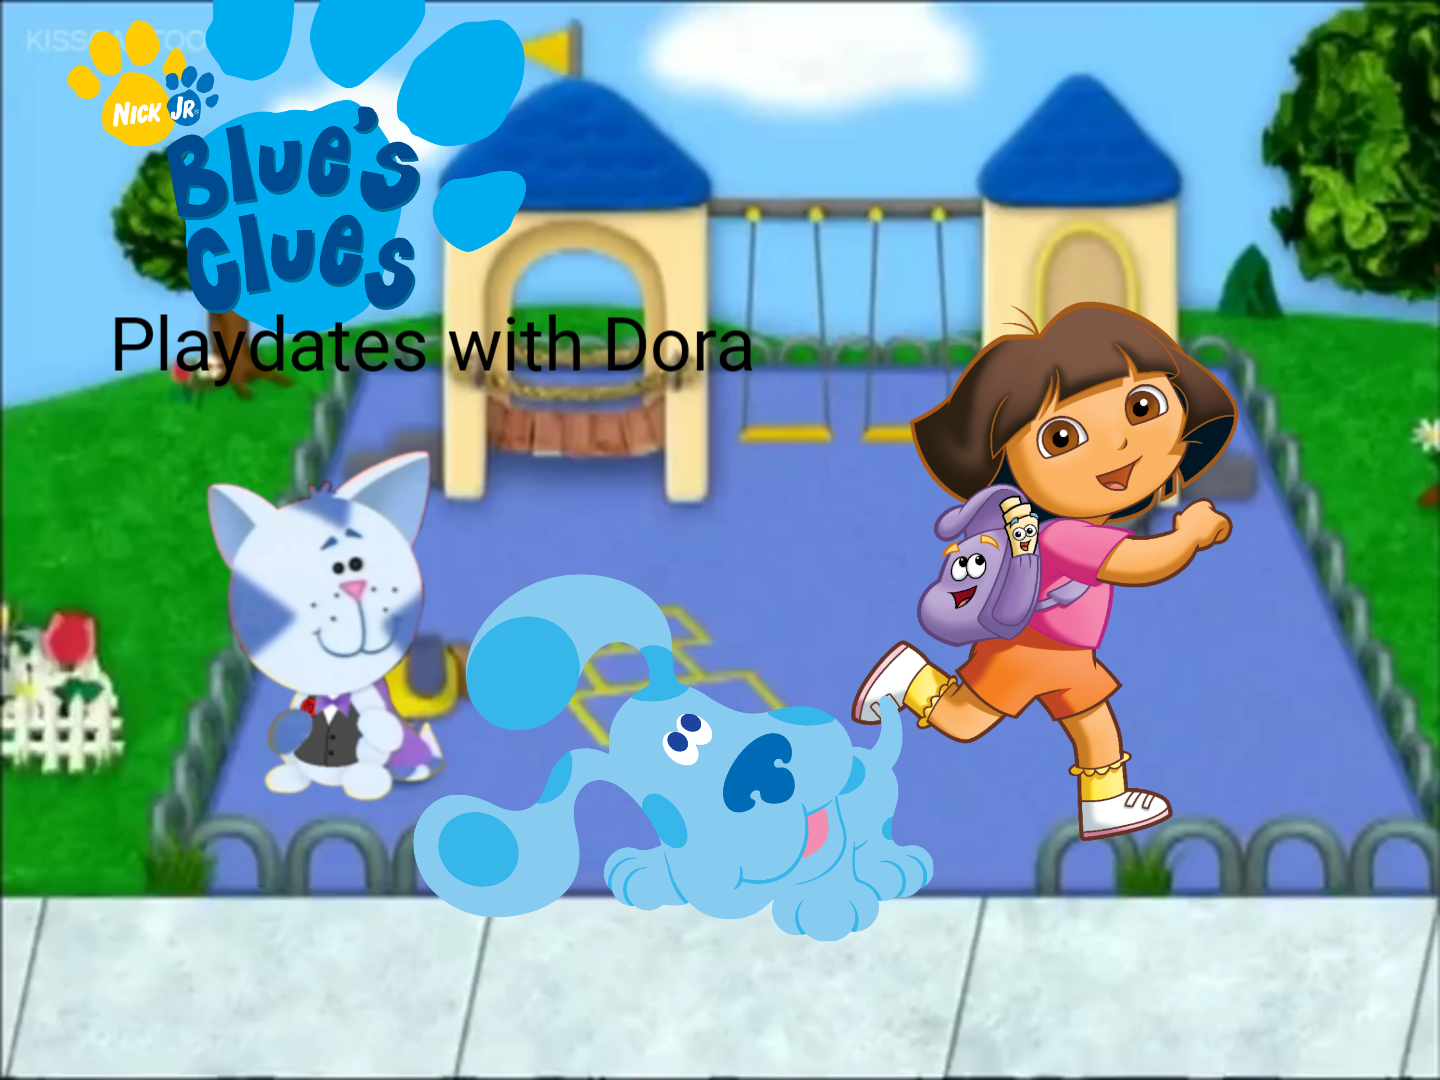 Blue's Clues: Playdates with Dora (VHS)